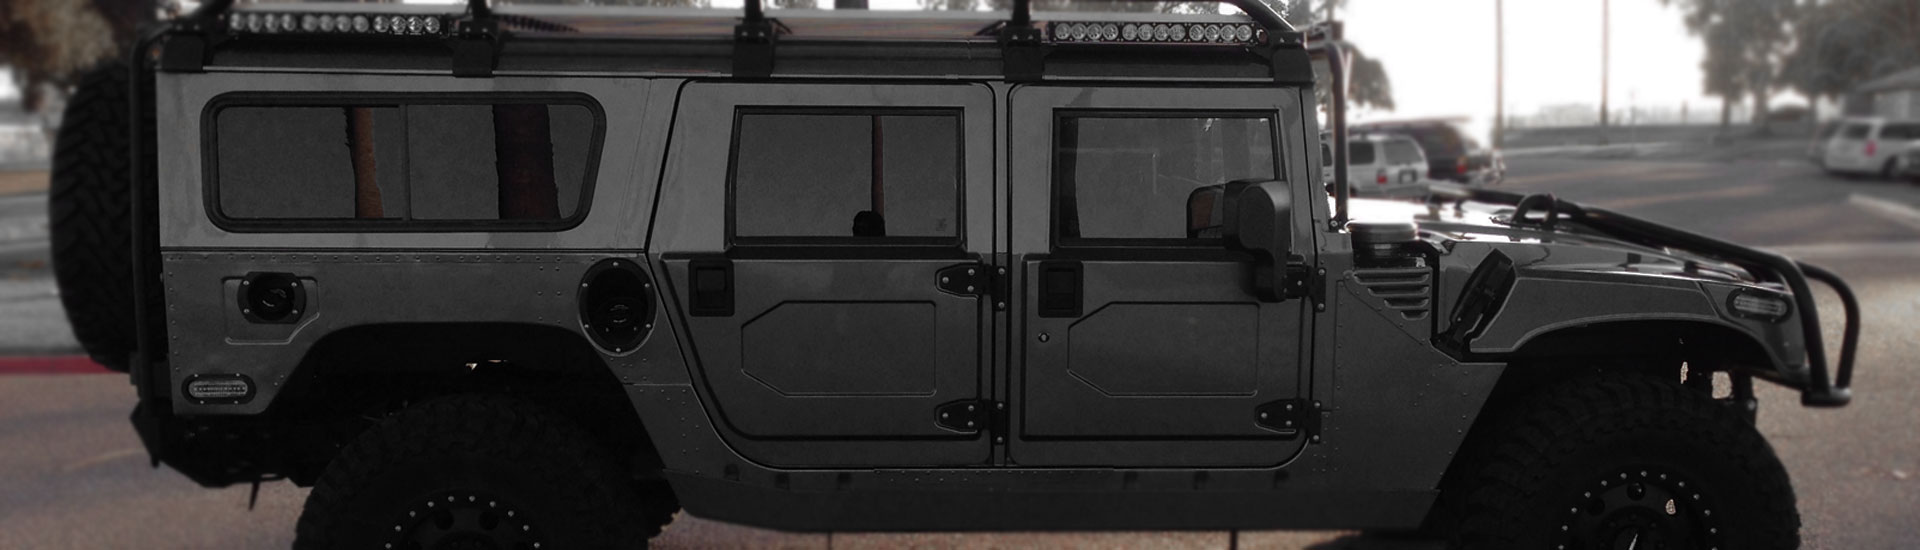 2008 Hummer H2 Window Tint